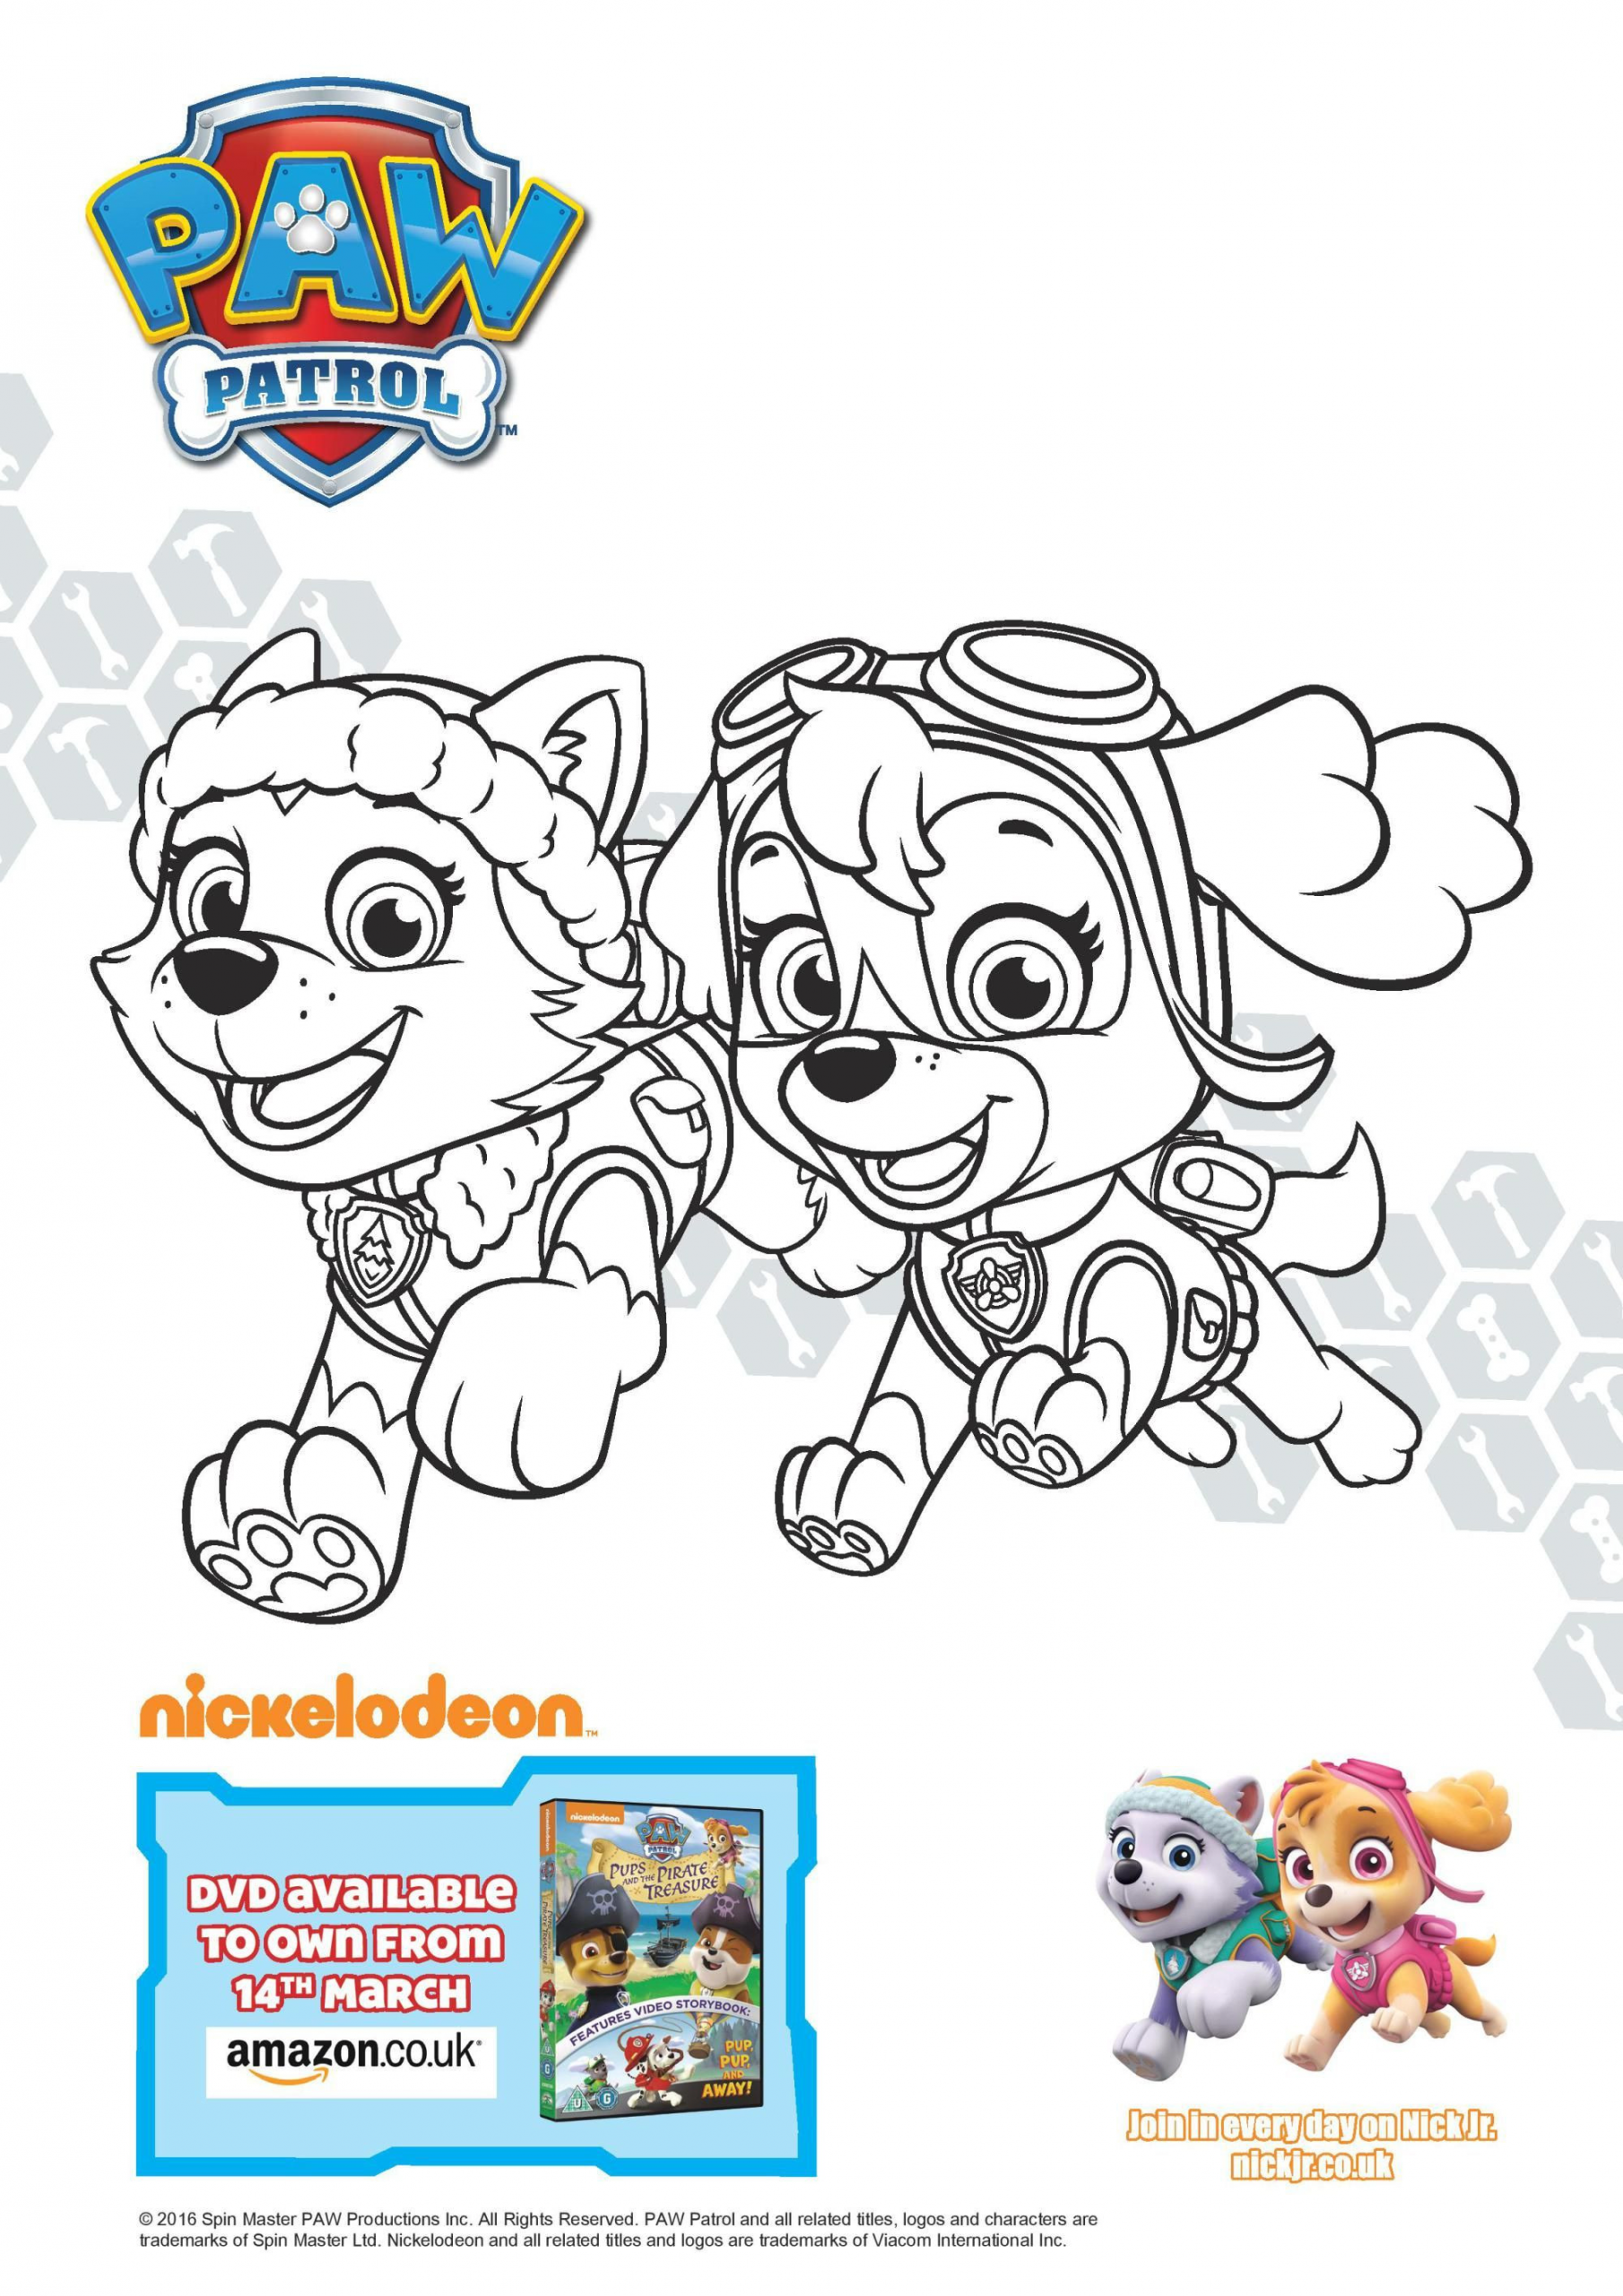 Sky Paw Patrol Coloring Page Youngandtae Com In 2020 Paw Patrol Coloring Pages Paw Patrol Coloring Paw Patrol Pups